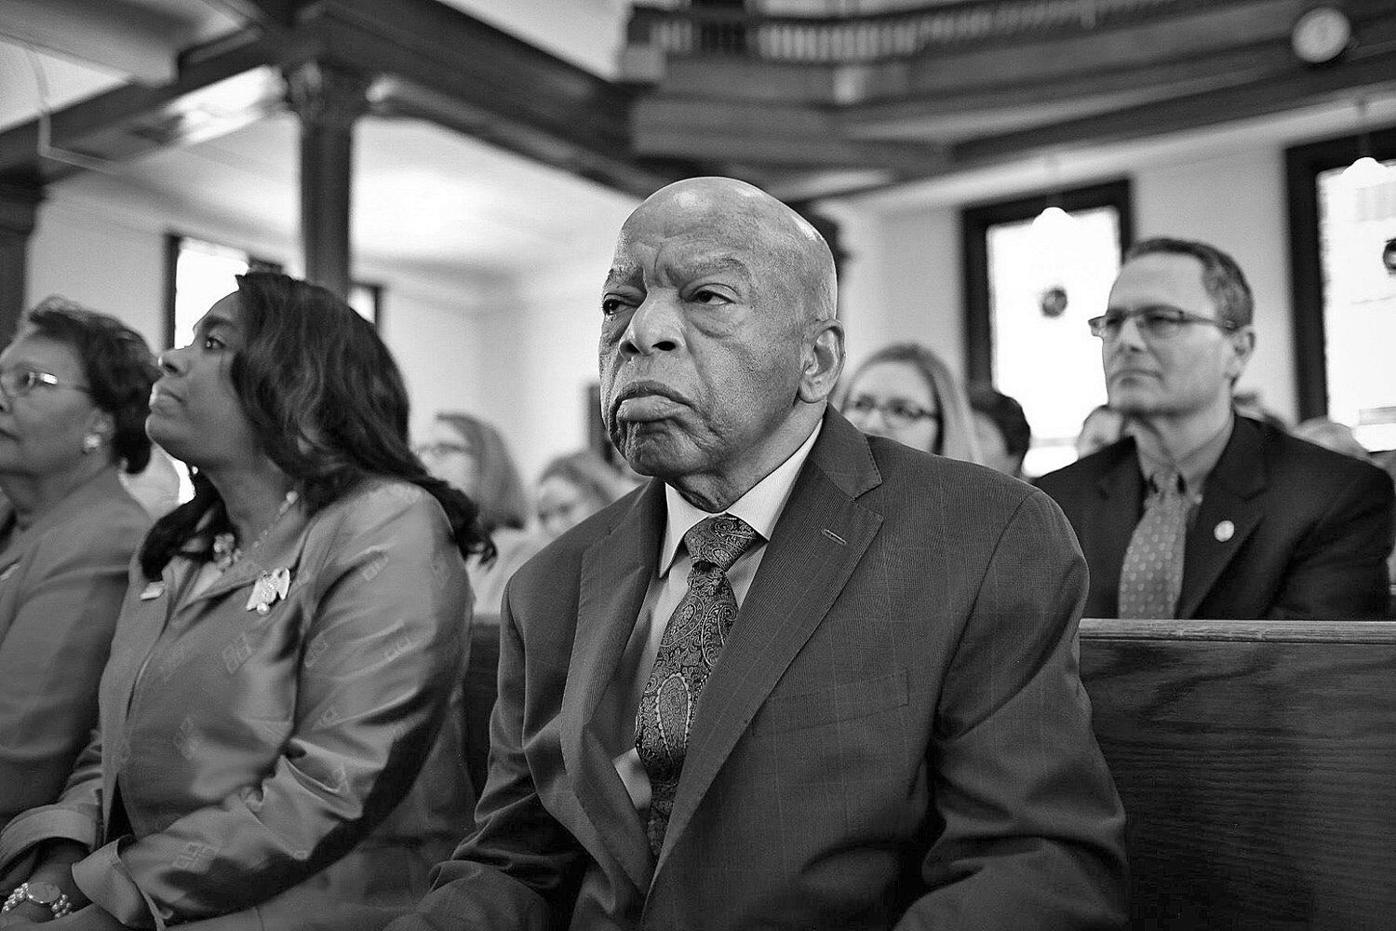 'John Lewis - Good Trouble': 'Our past is not past'